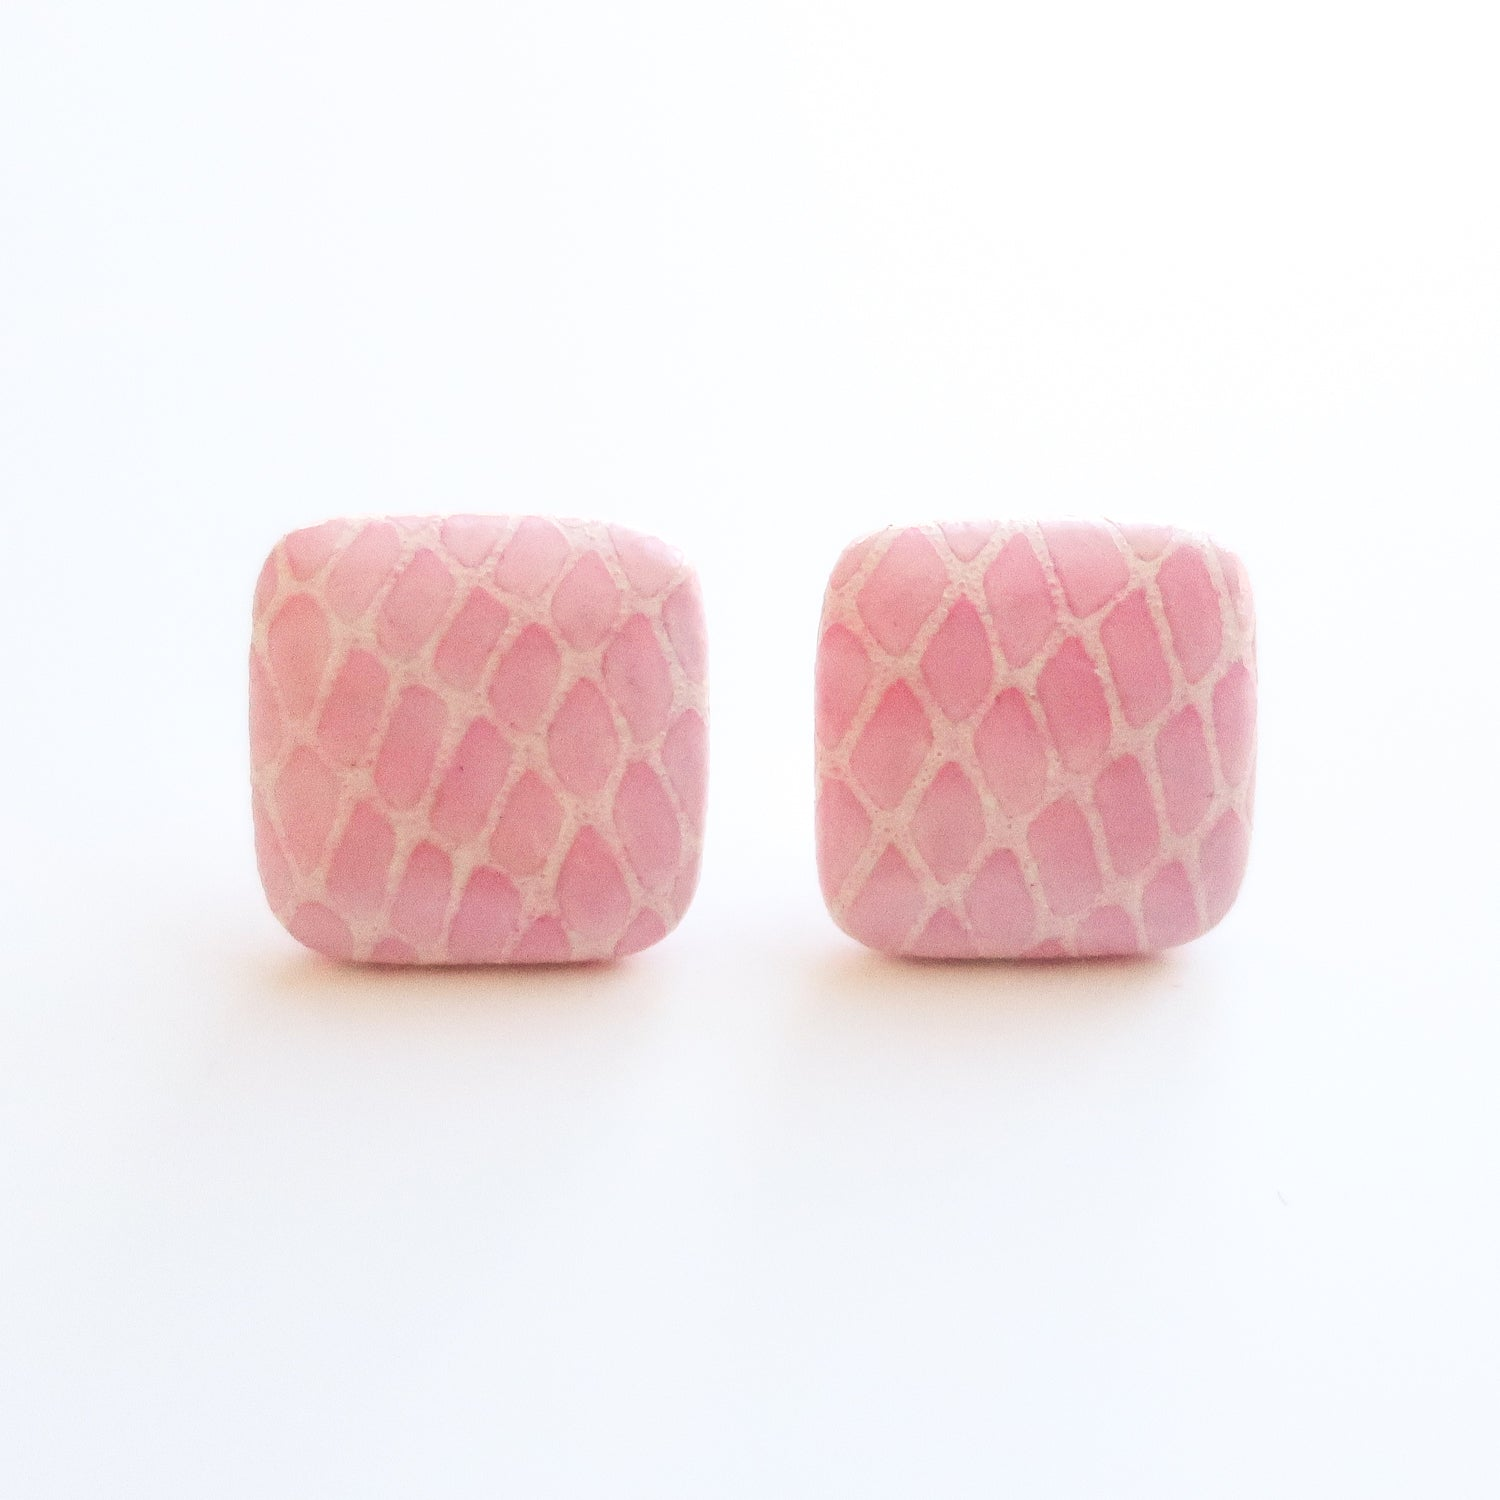 "Second Room Vintage Clothing. Vintage pink and white snakeskin print square stud earrings. These earrings are 3/4"" square. Original earring backs have been replaced with new, clear silicone backings.  Free North American shipping on all orders."